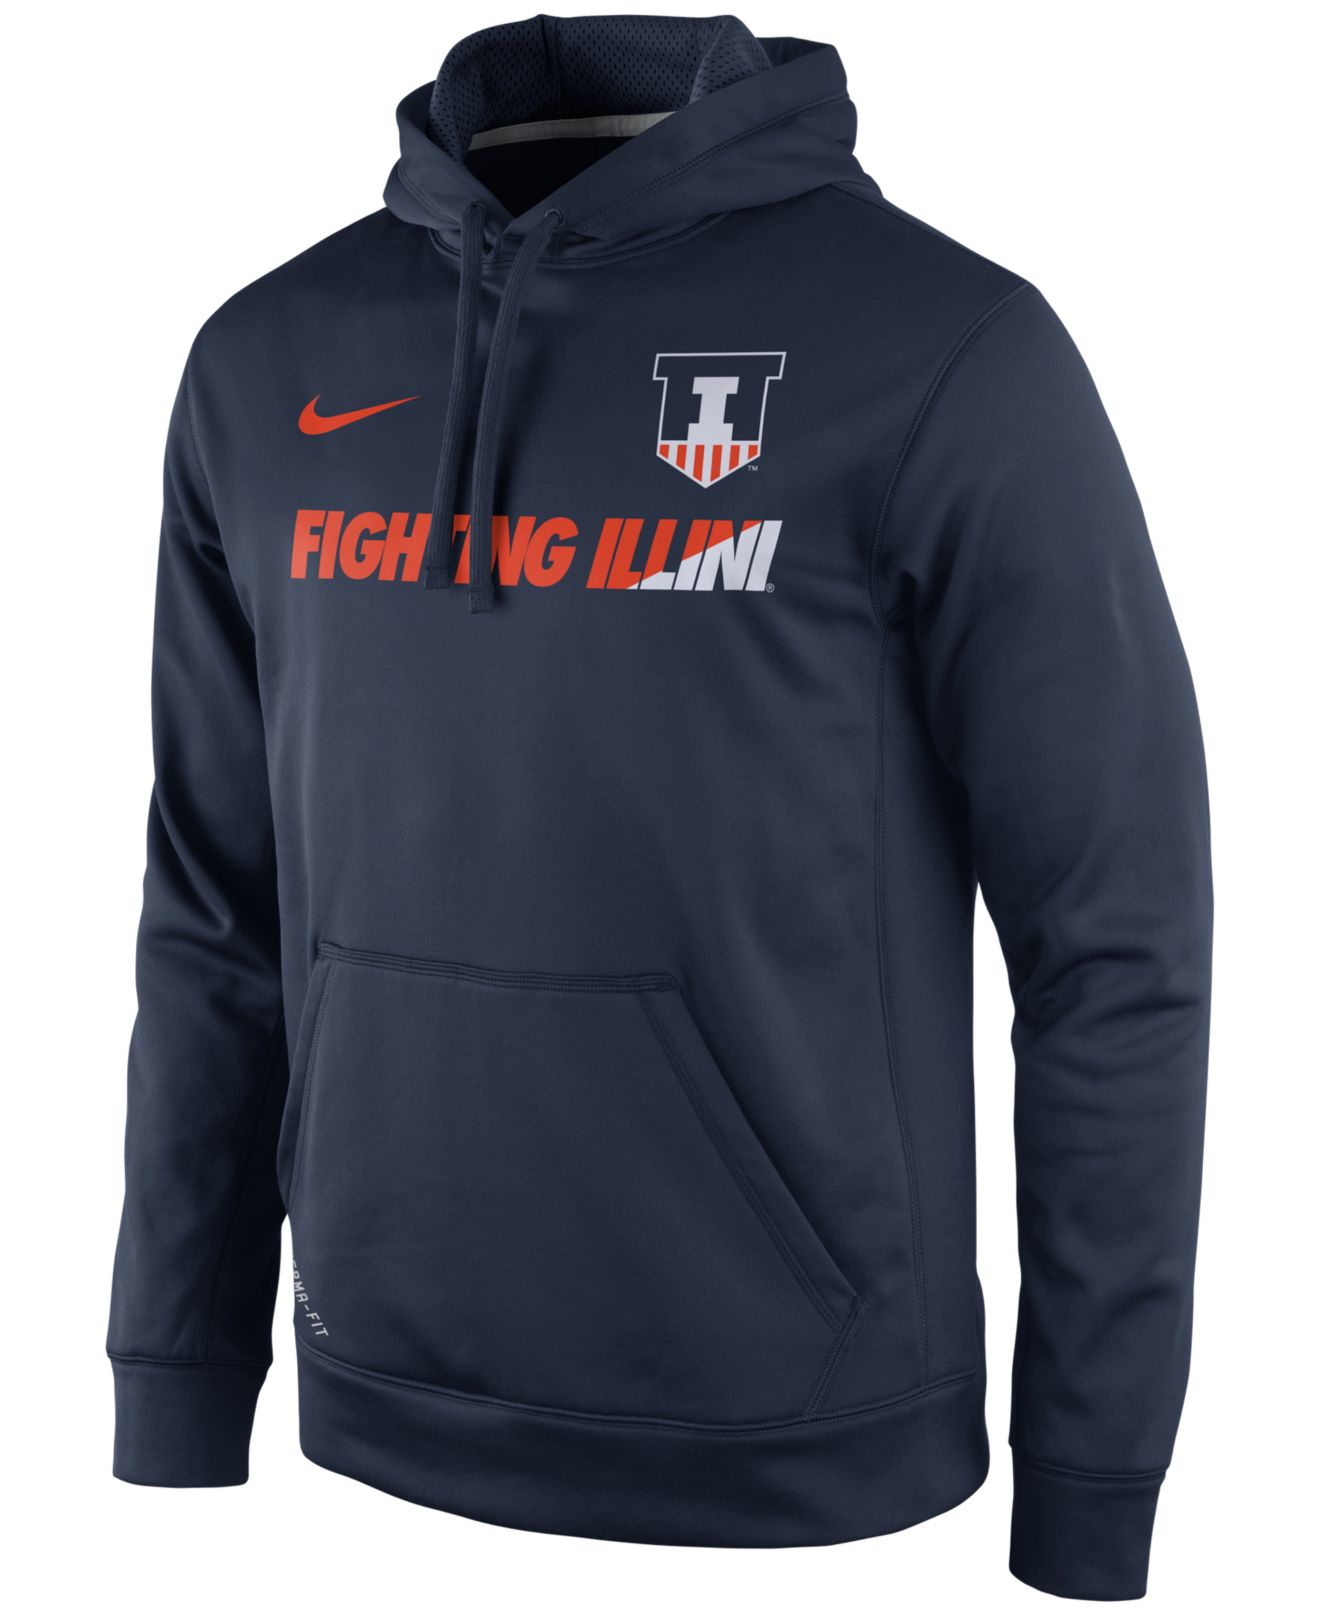 Illinois hoodies